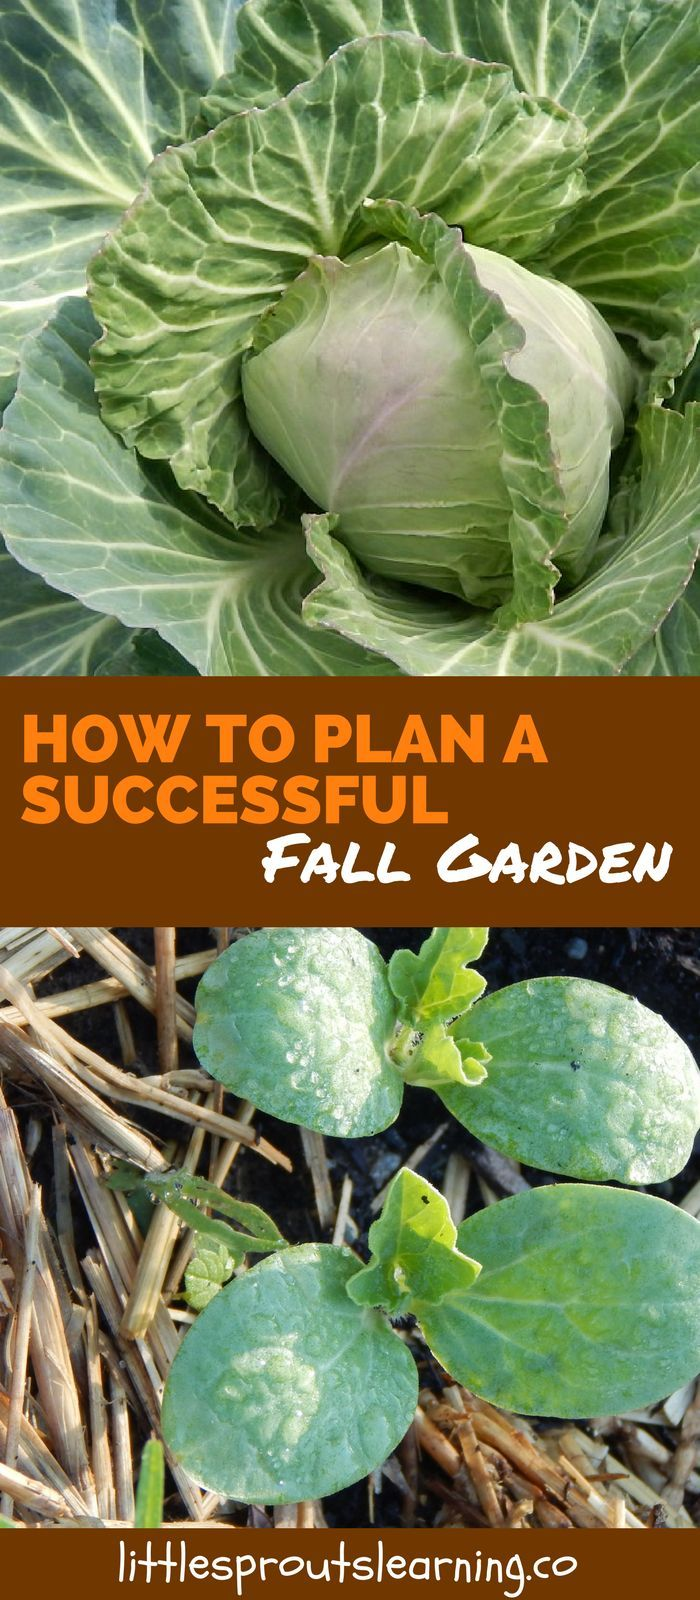 5 Fall Gardening Tasks for a Better Spring Garden